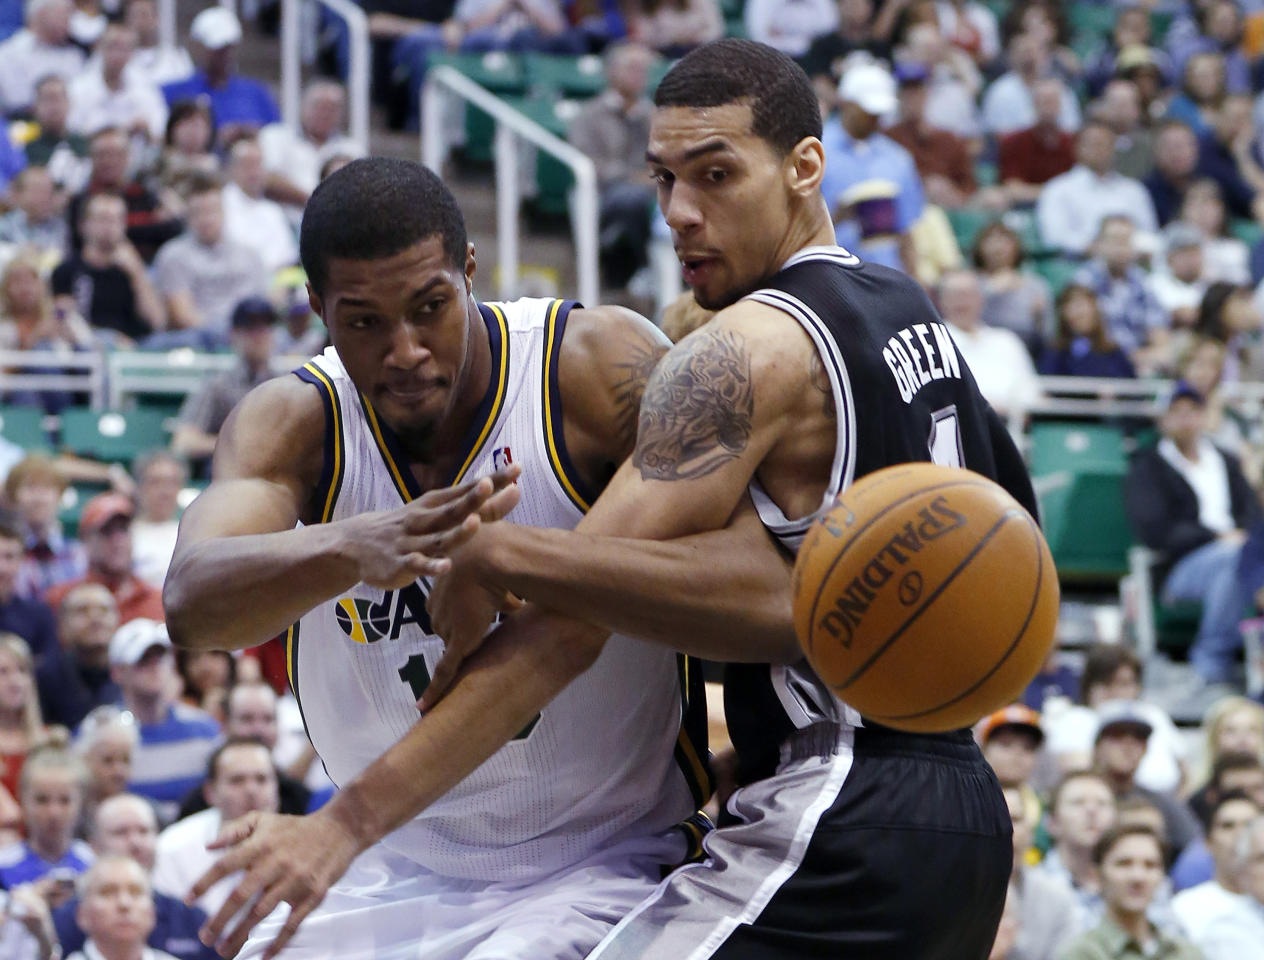 Utah Jazz forward Derrick Favors, left, passes around San Antonio Spurs guard Daniel Green during the first half of an NBA basketball game Monday, April 9, 2012, in Salt Lake City. (AP Photo/Jim Urquhart)